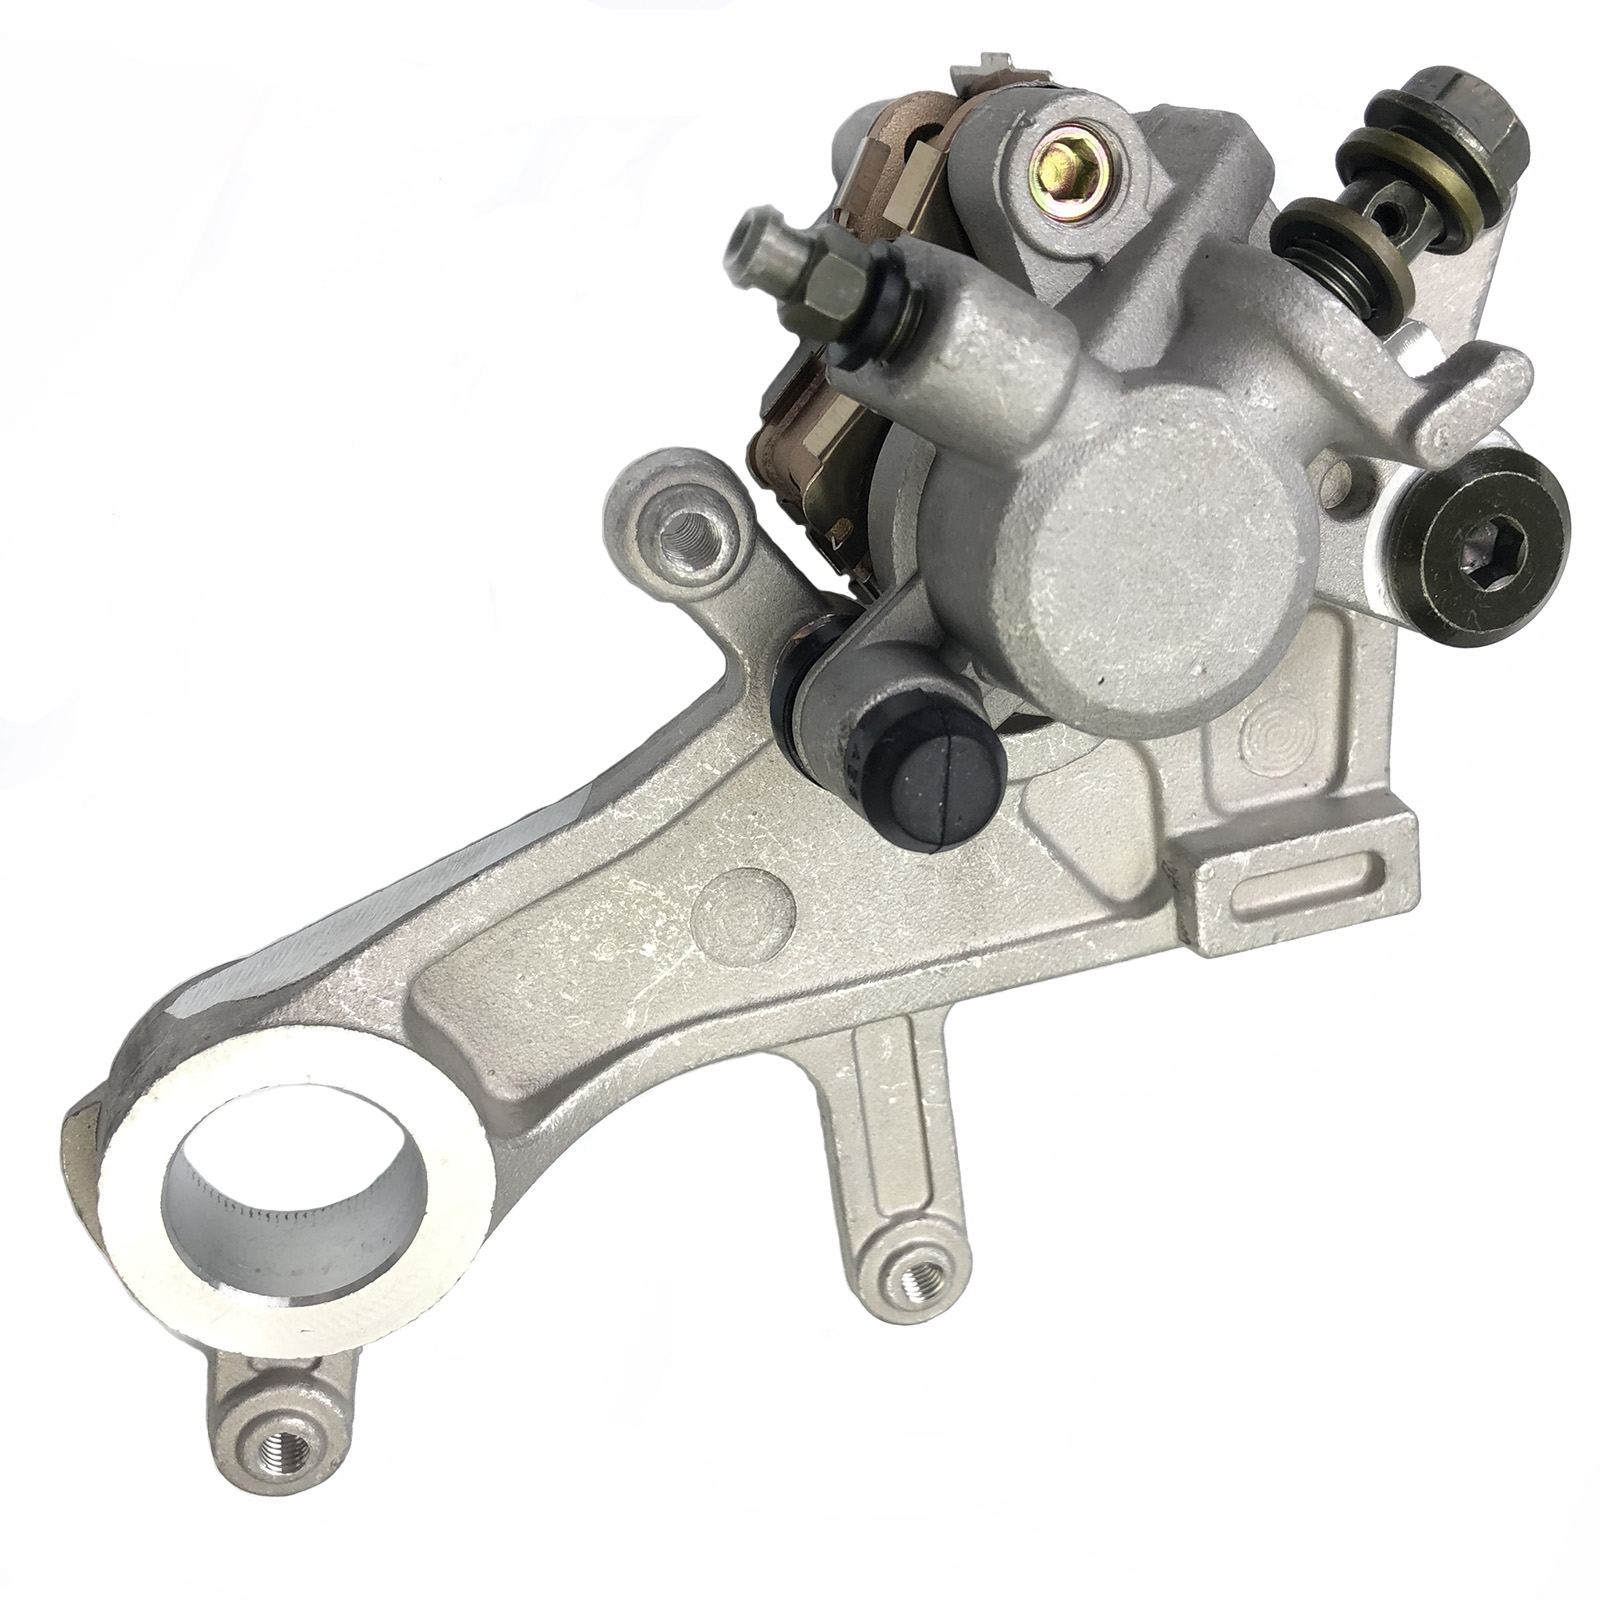 Rotor Arm for Ford Escort 2 1600 1.6 1598cc 1974-80 replace Ford DRB752